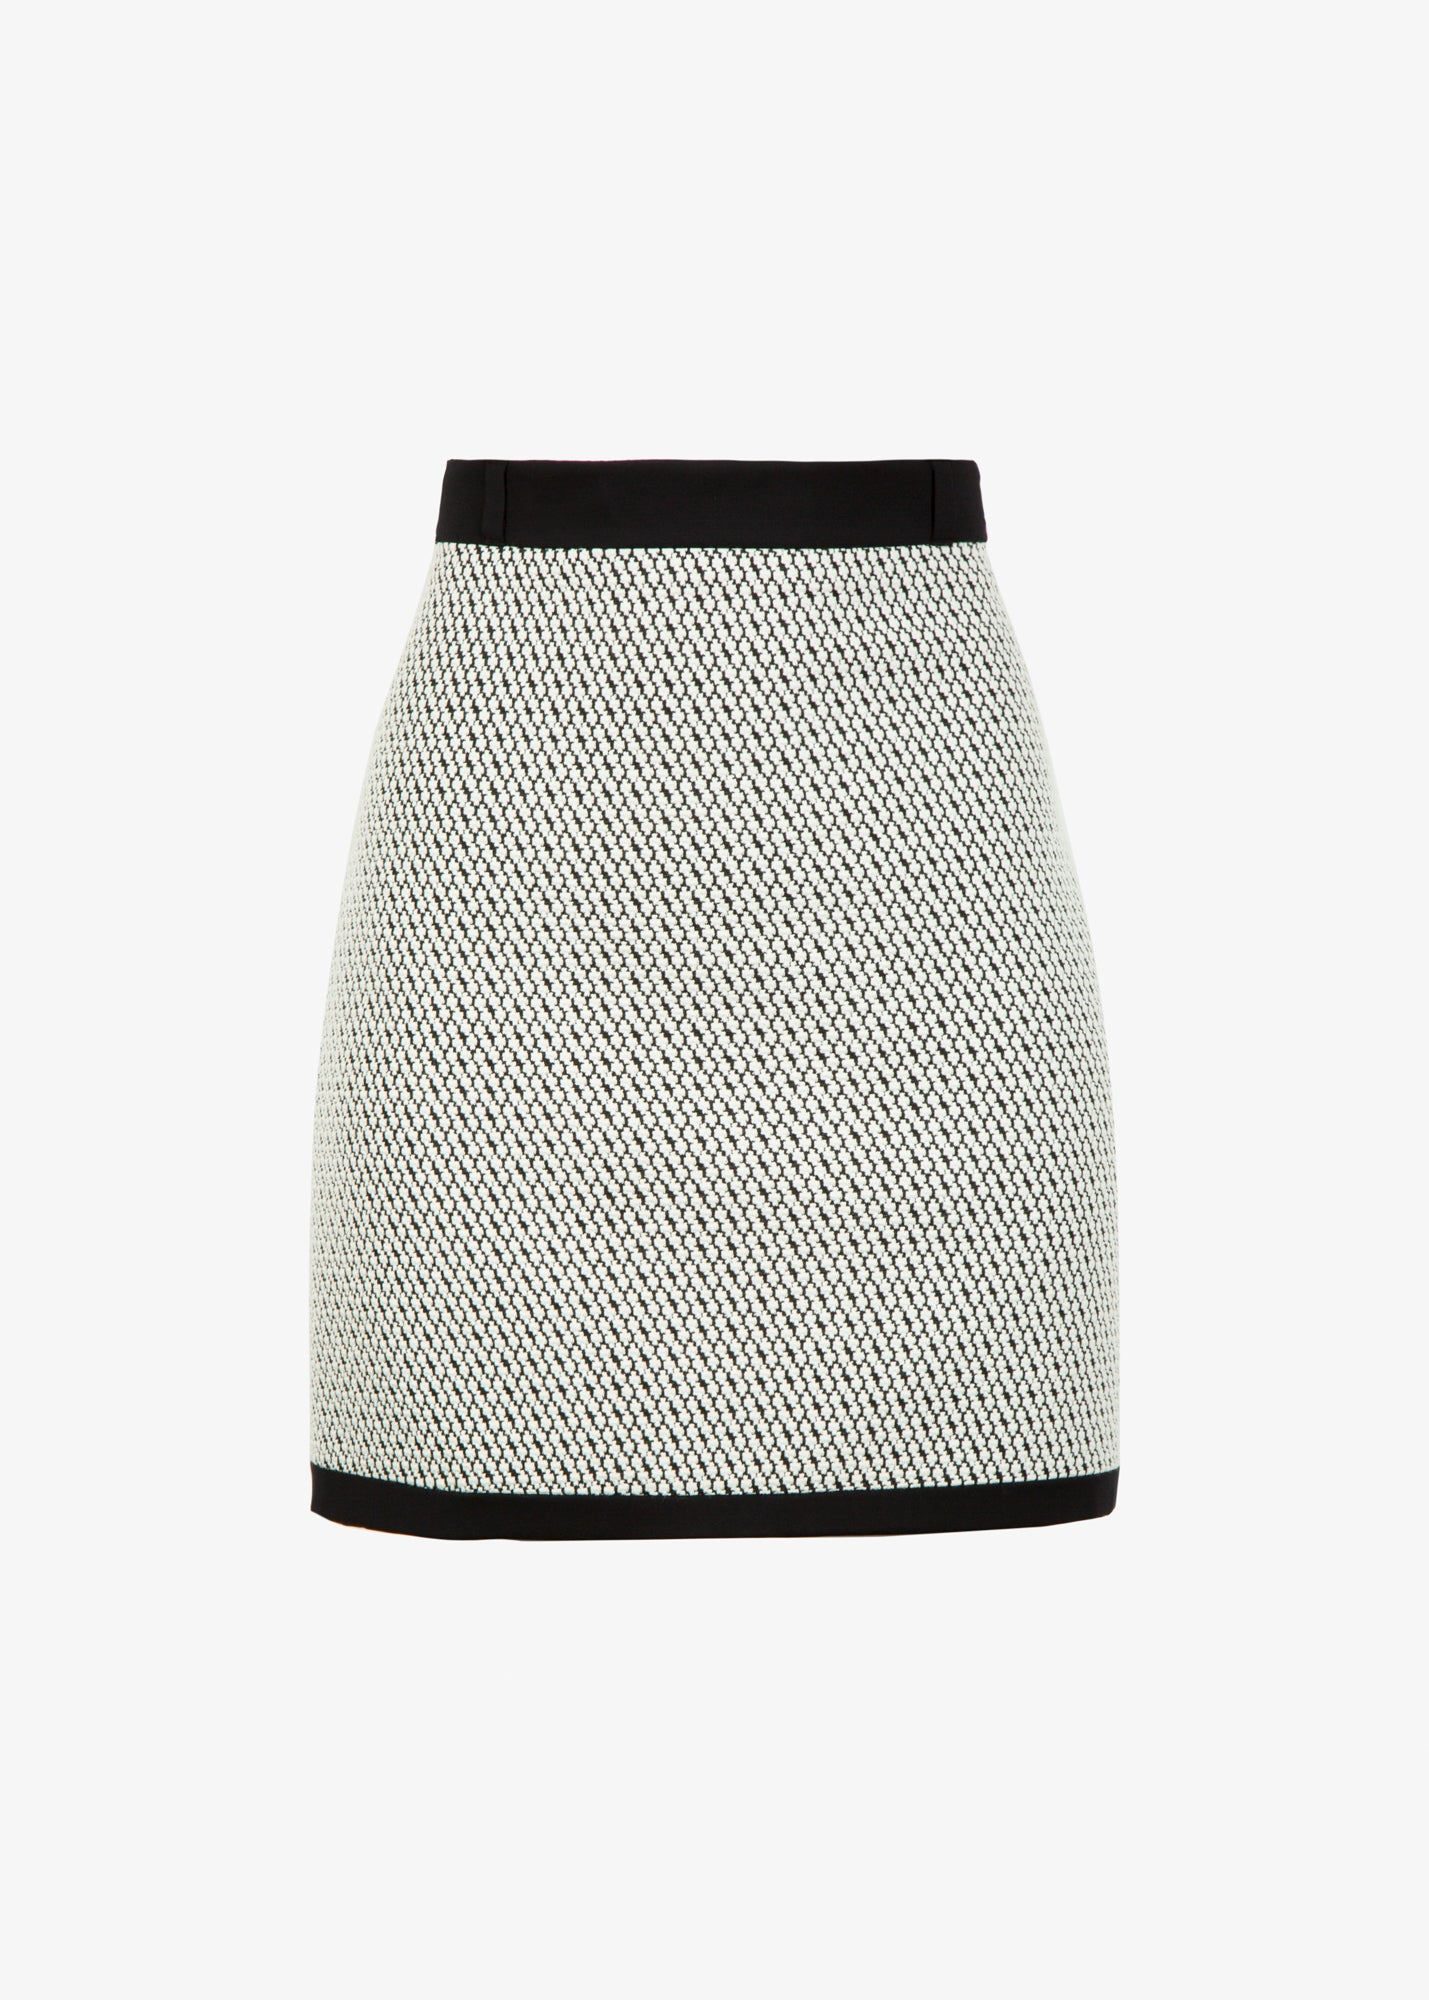 jacquard tricot rok met constrasterende band